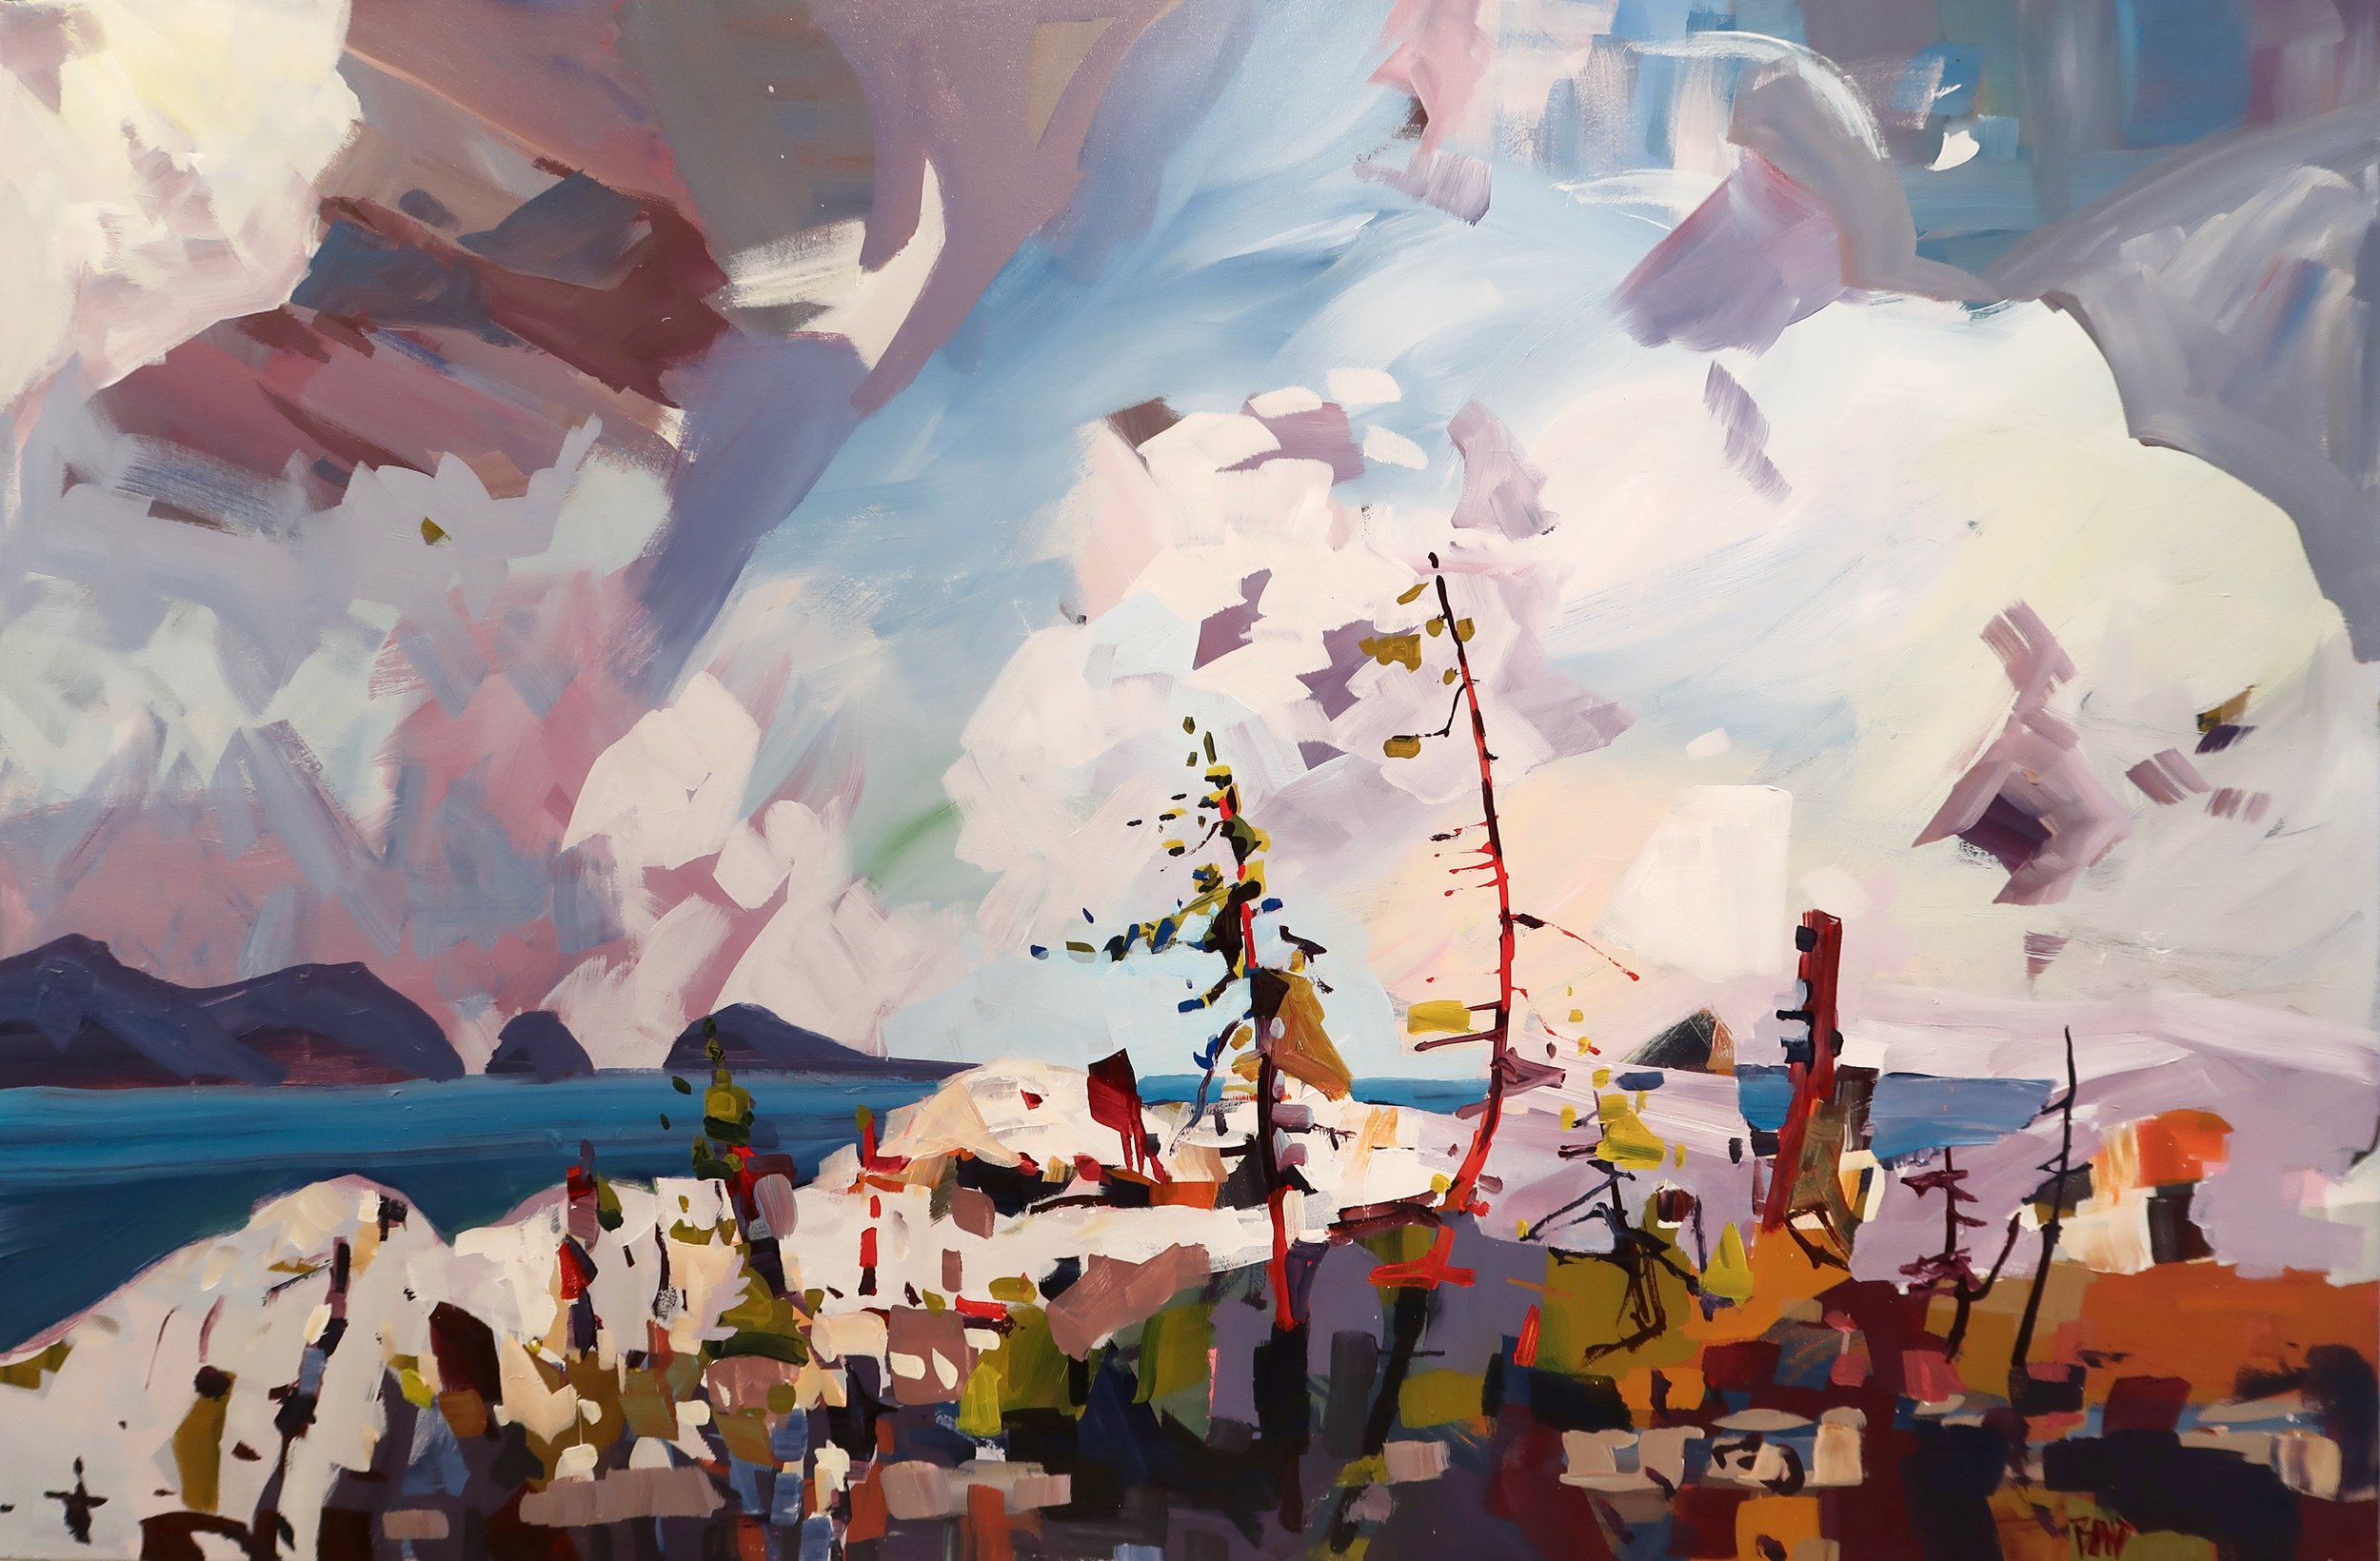 Islands in the sky, 40 x 60 inches, acrylic on canvas, SOLD